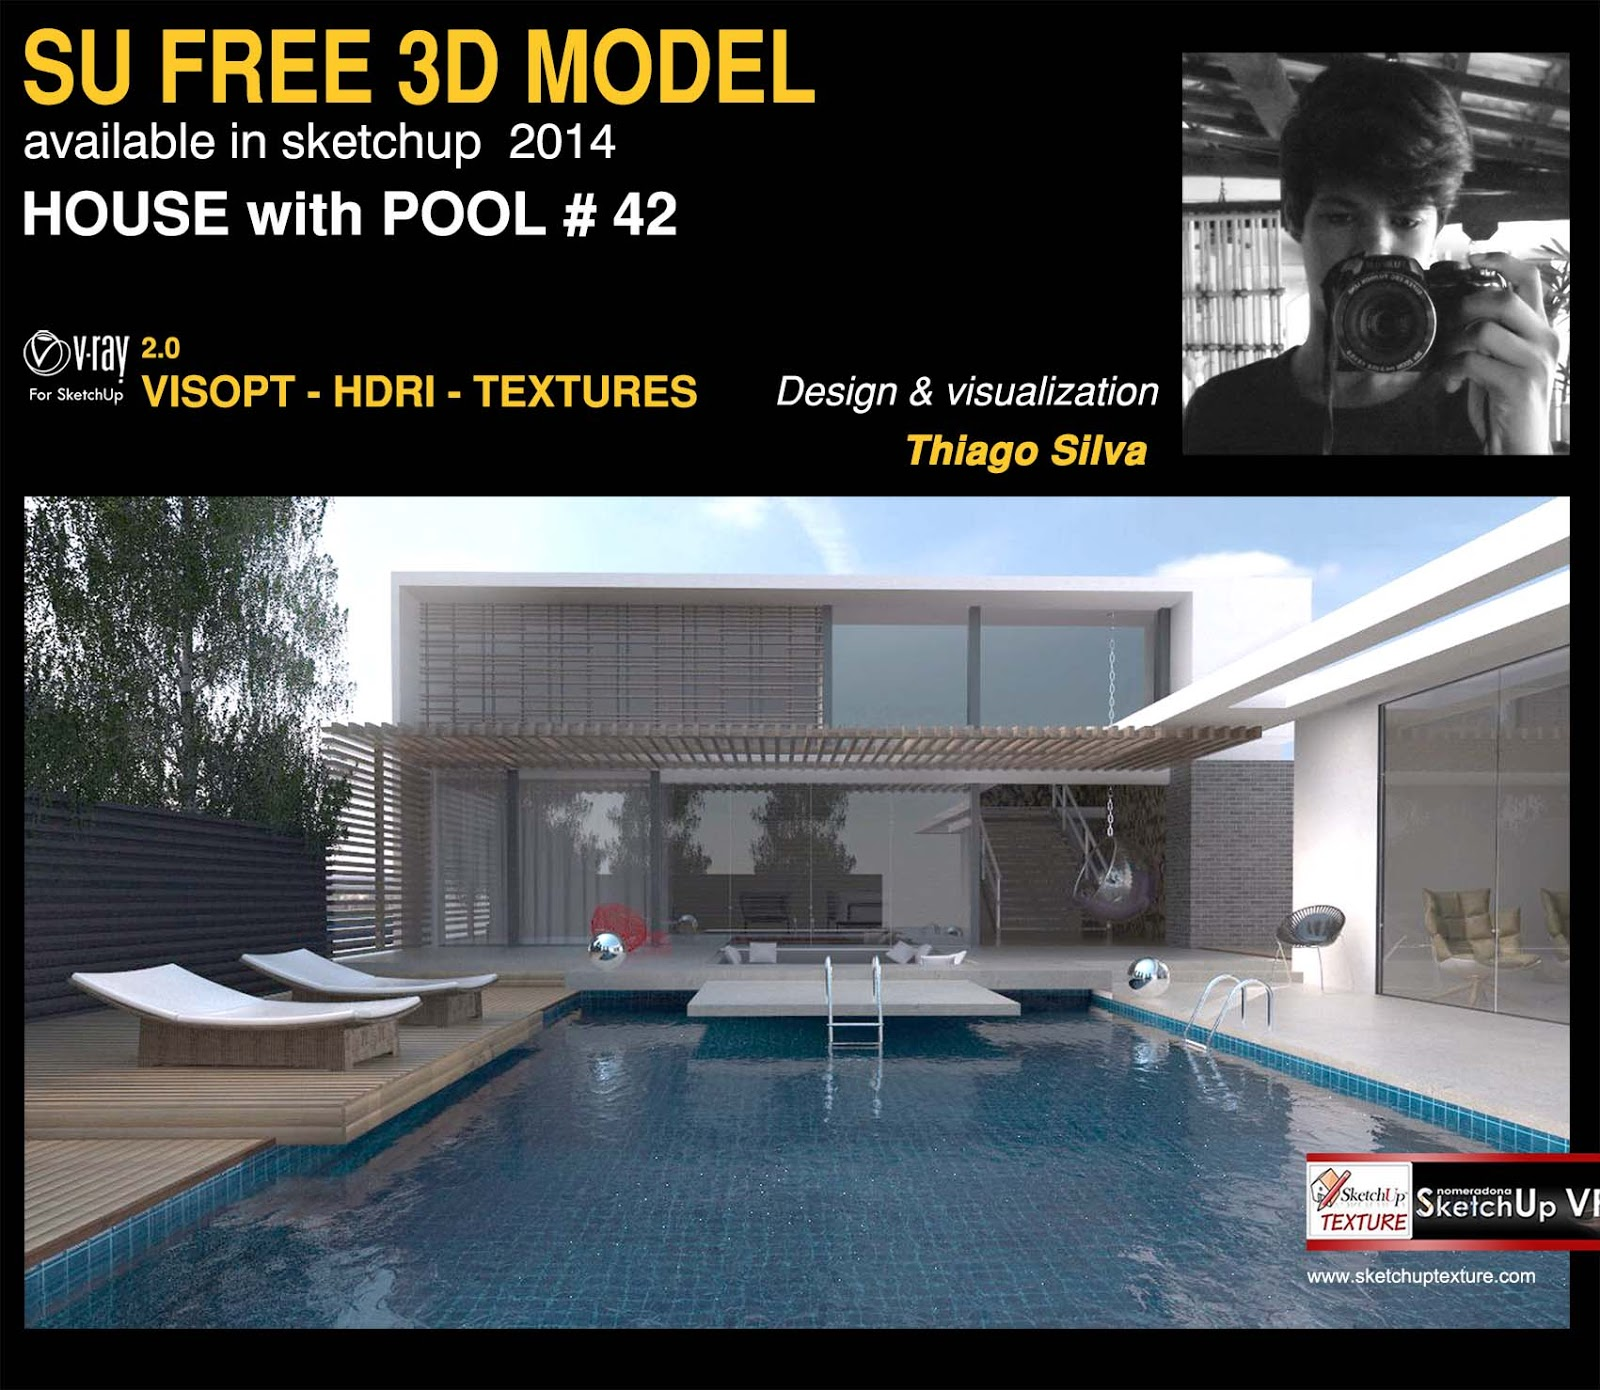 Sketchup Home Design: SKETCHUP TEXTURE: Free Sketchup 3d Model House With Pool